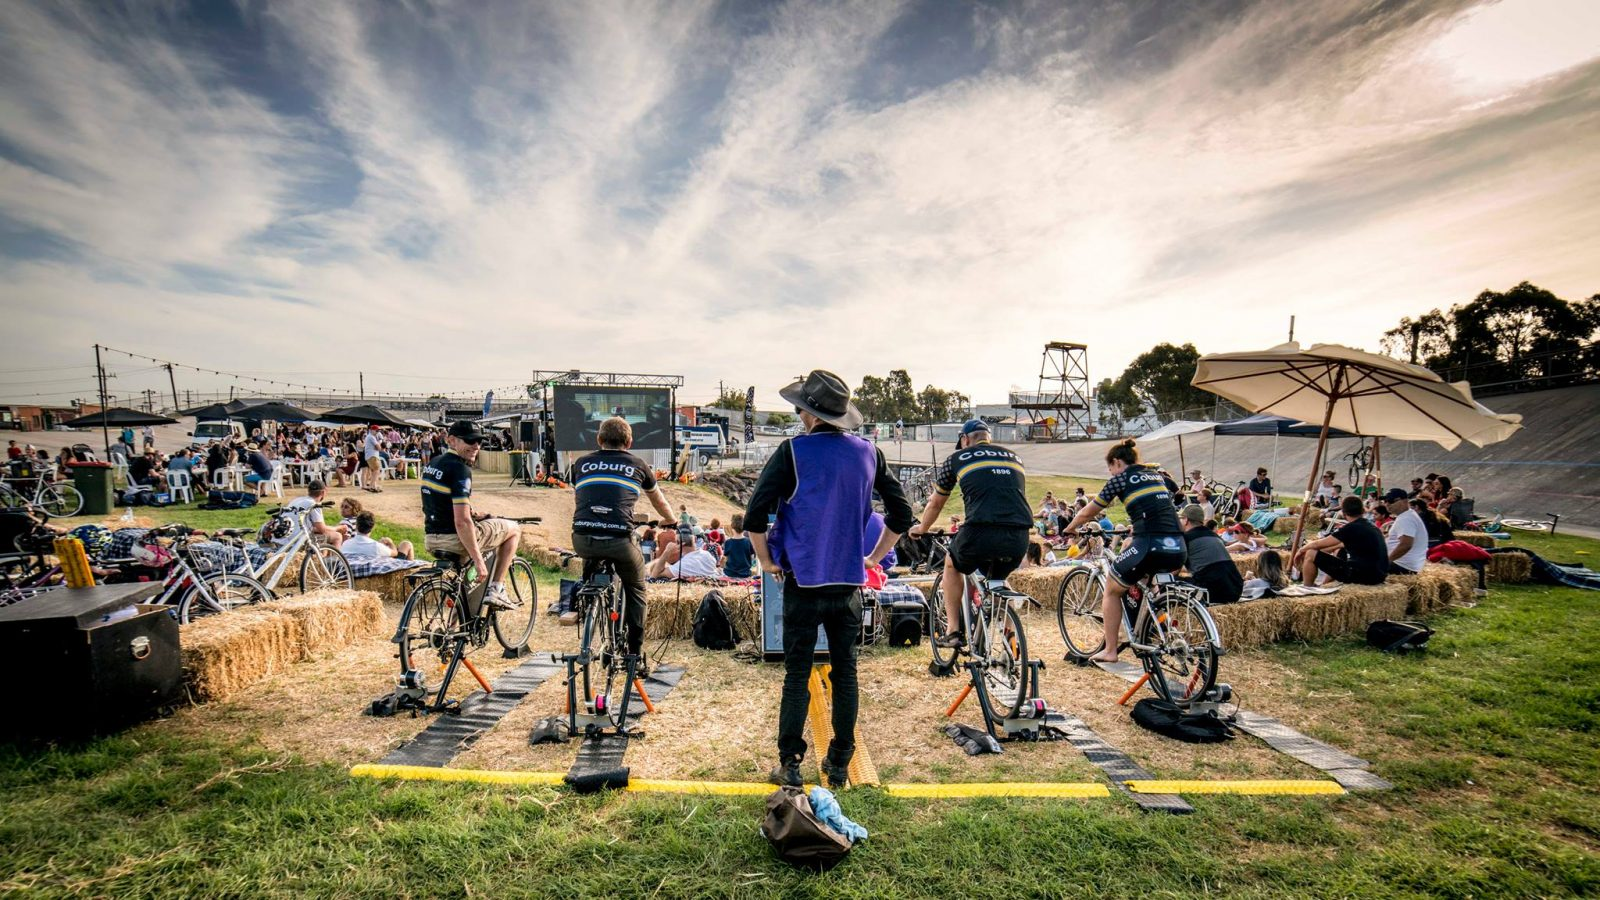 CLIMATE EMERGENCY CINEMA - Powered by bicycles!